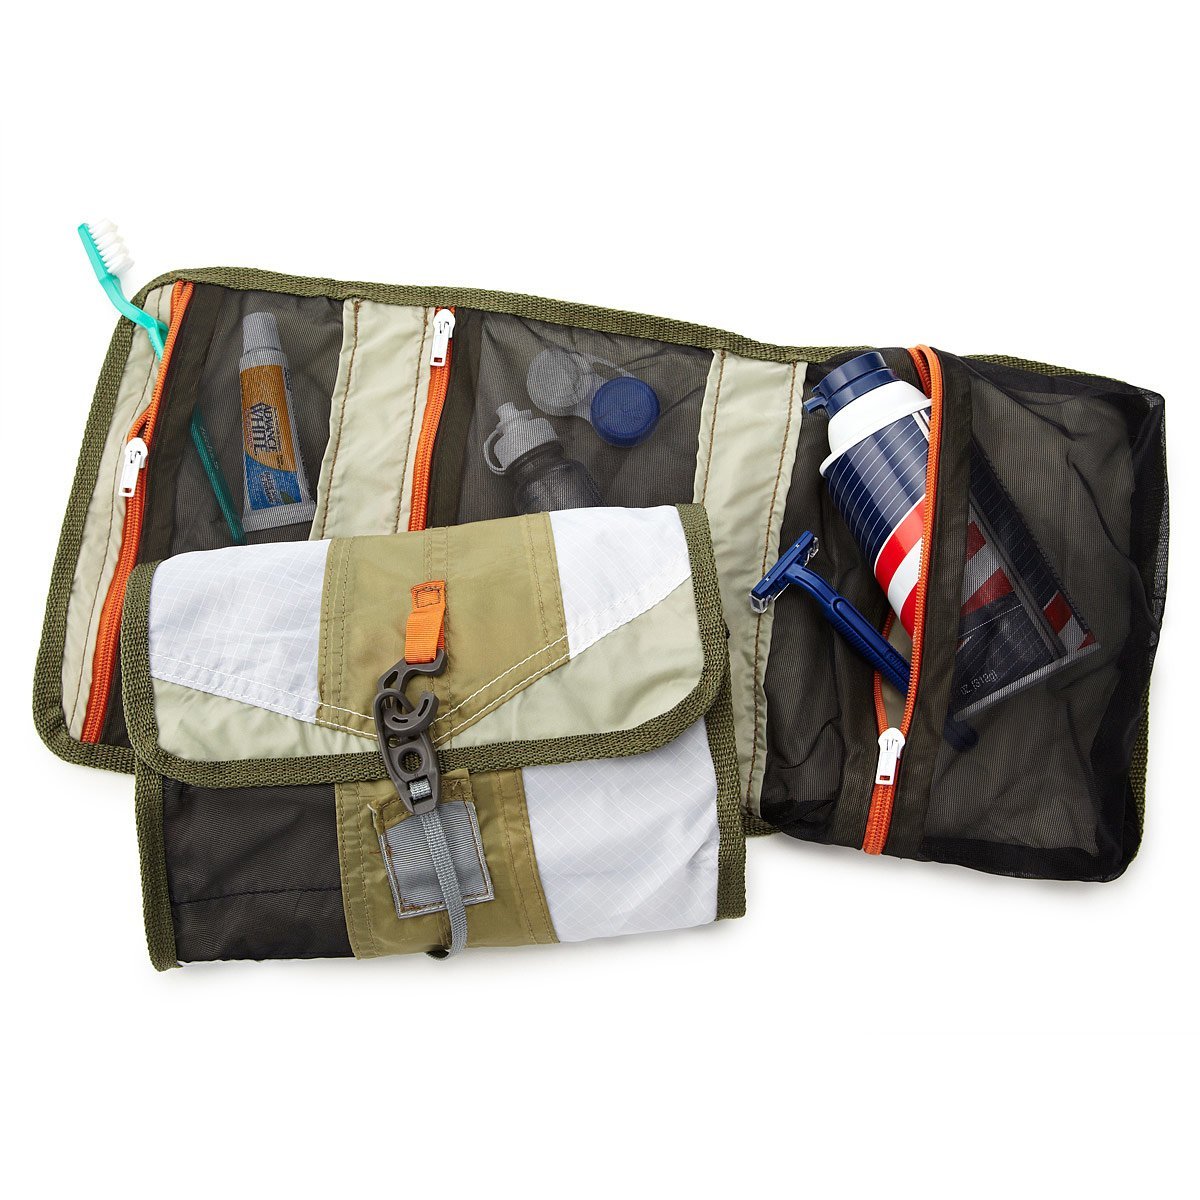 upcycled tent dopp kit | mens toiletry bag | uncommongoods